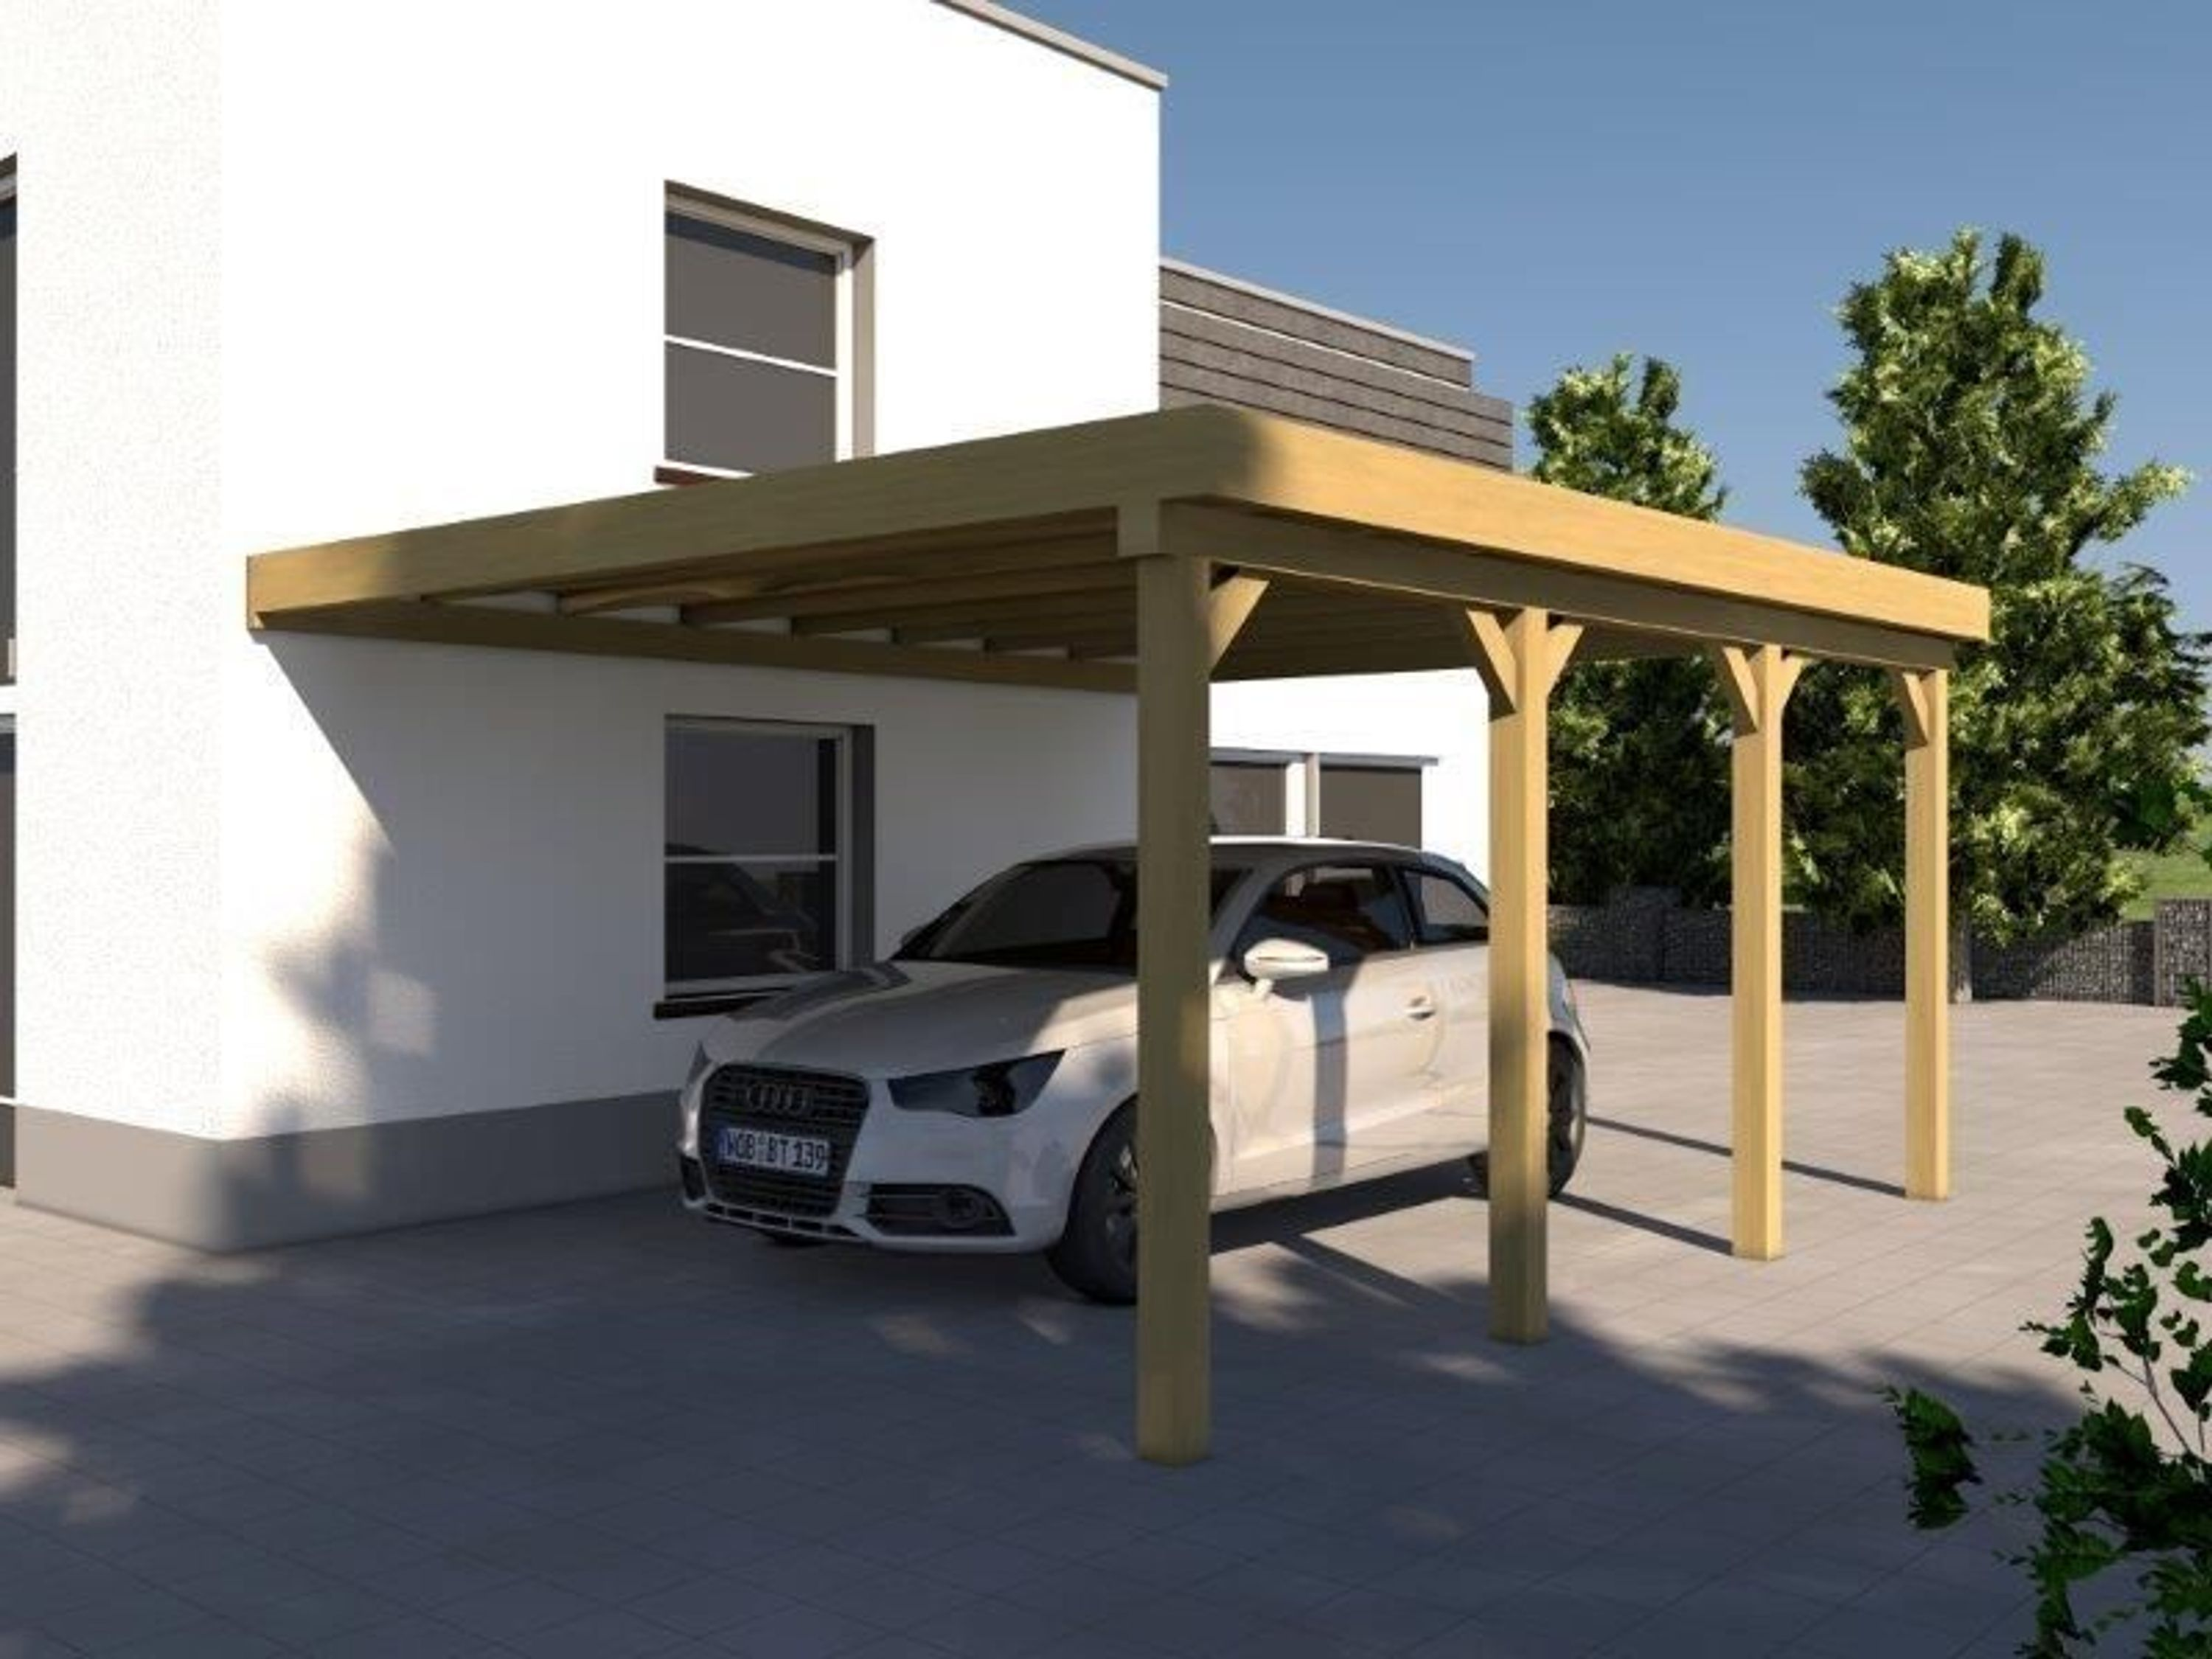 anlehncarport carport eifel iv 400x600cm bausatz anbaucarport dacheindeckung kaufen bei. Black Bedroom Furniture Sets. Home Design Ideas